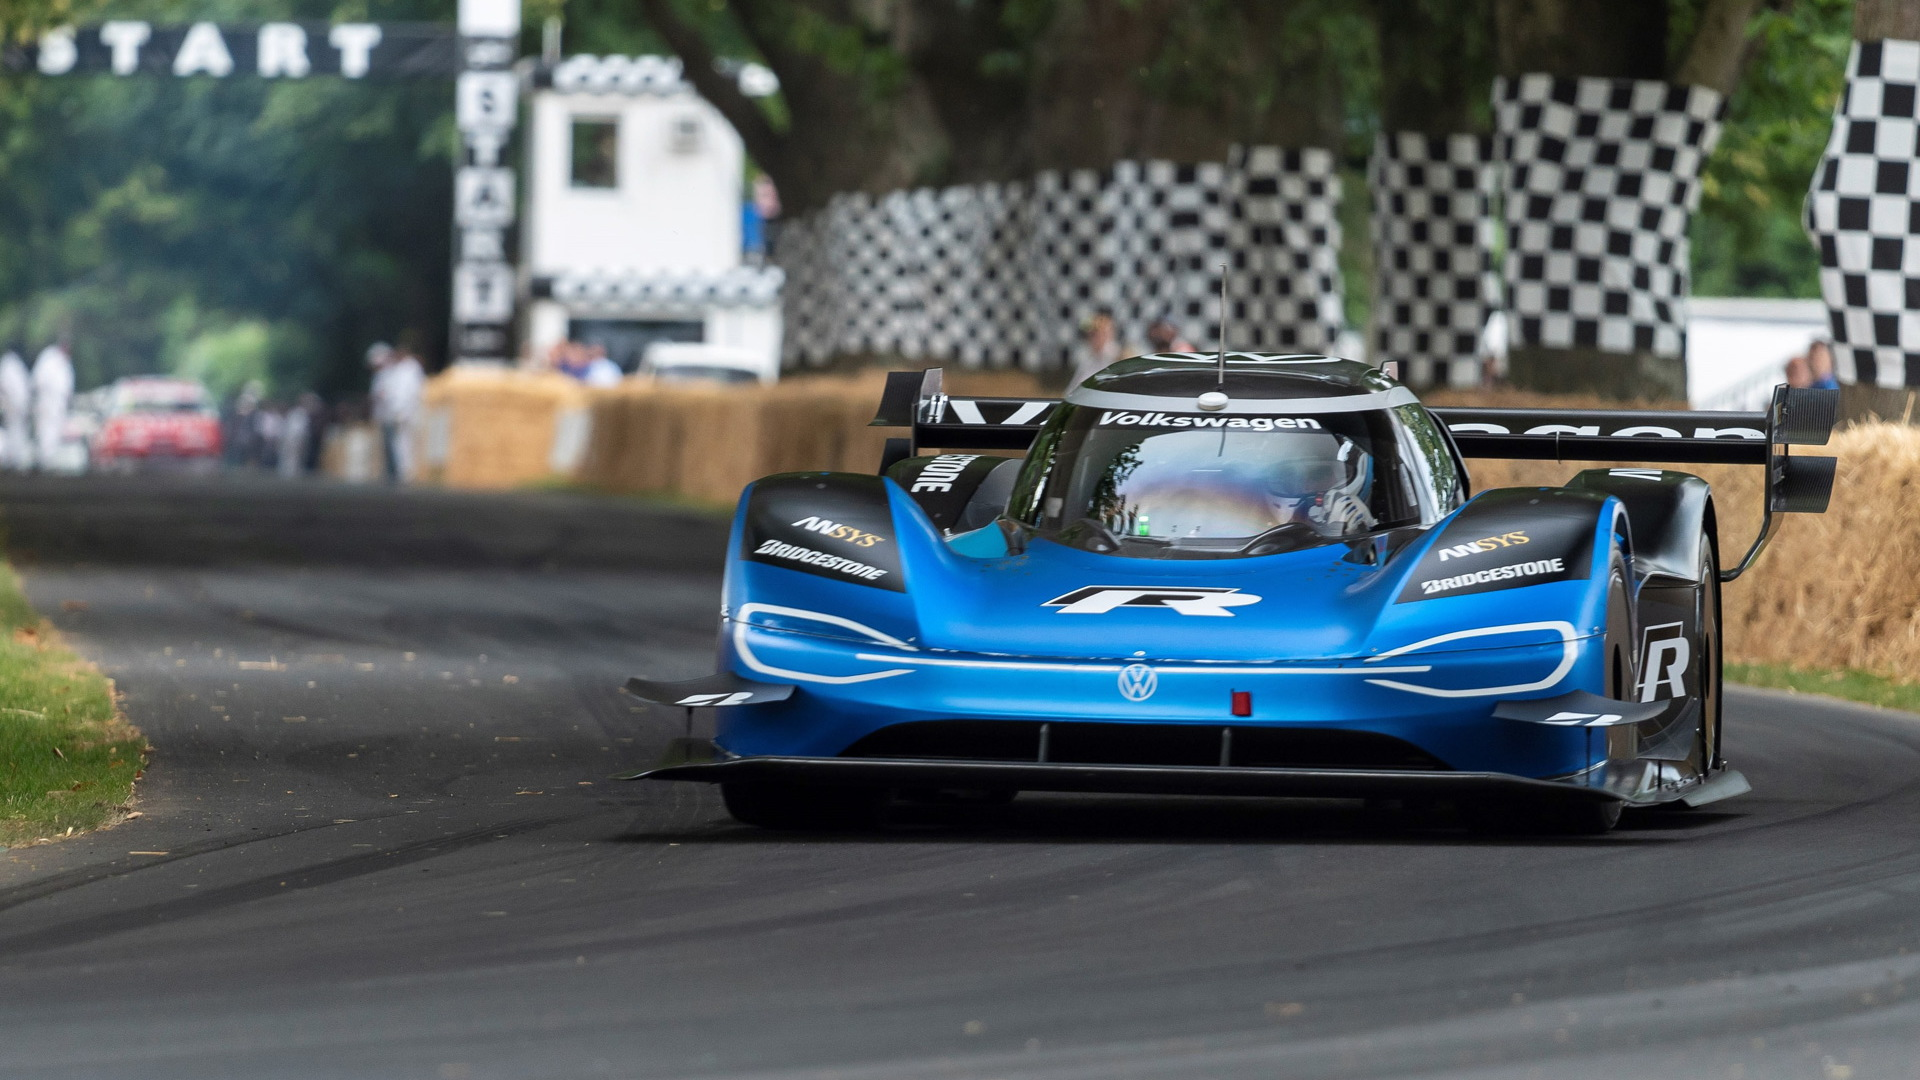 R Improves Goodwood Hill Record To 39.9 Seconds